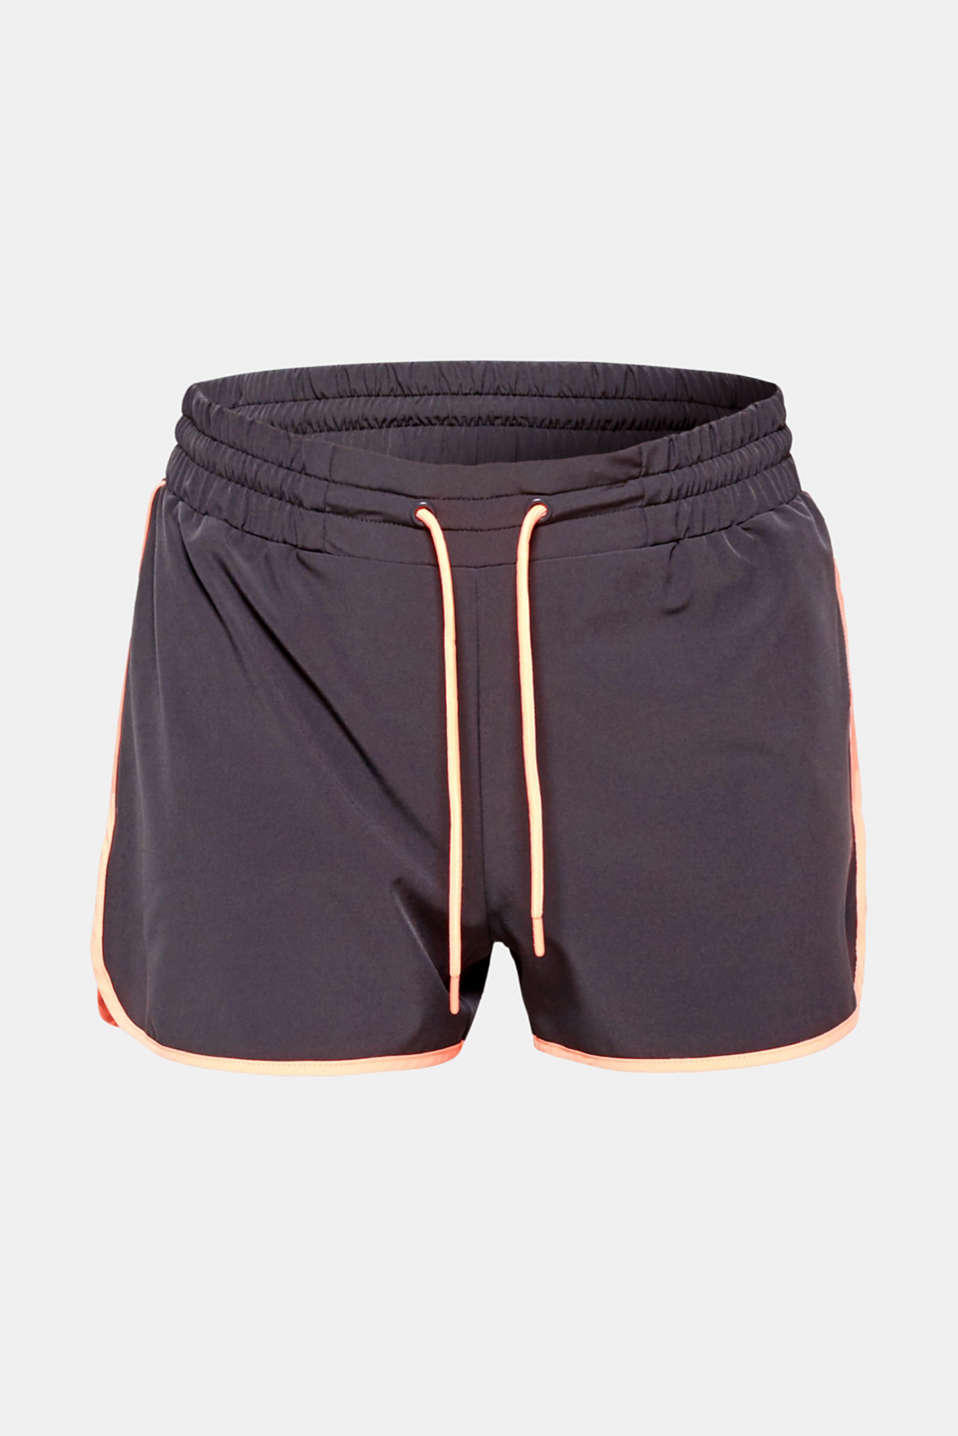 Practical and with stylish neon details: These active shorts with E-DRY technology are airy and lightweight.